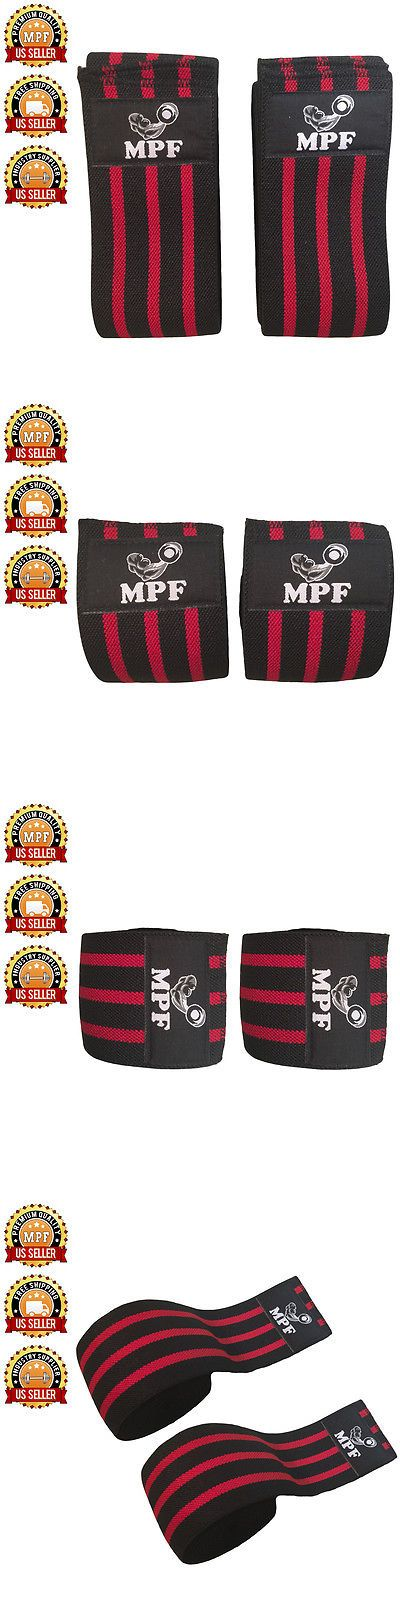 Wrist and Knee Wraps 179821: Power Lifter Weight Lifting Red Line Knee Wraps Support Bandage Gym Training -> BUY IT NOW ONLY: $30 on eBay!